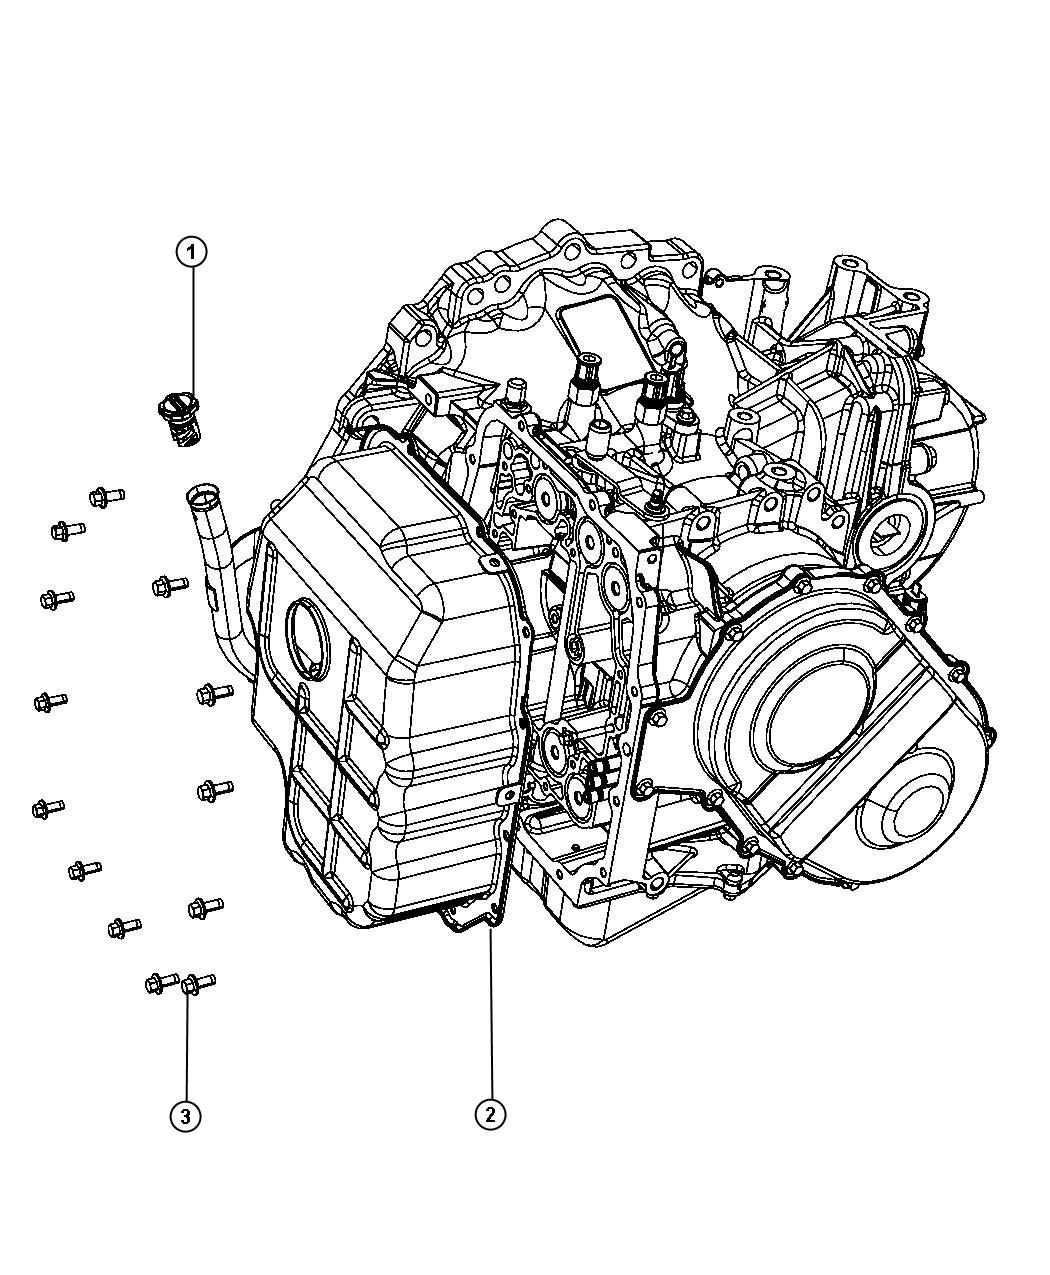 Service manual [How To Change Transmission Fluid 2012